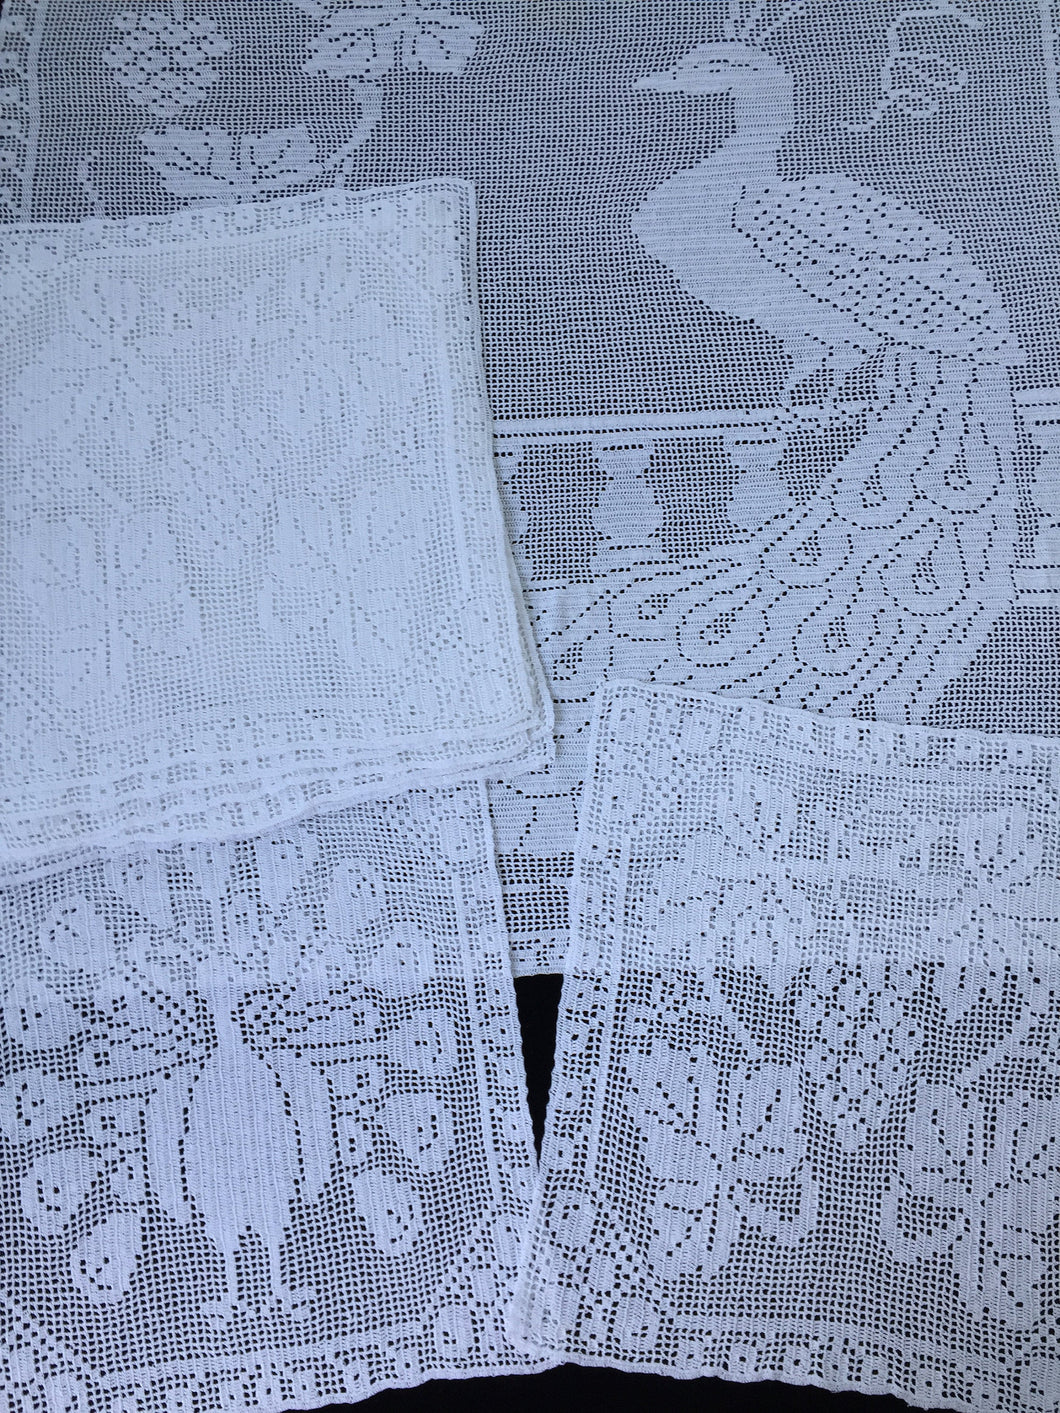 Antique White Lace Panels for Making the Mary Card Designed